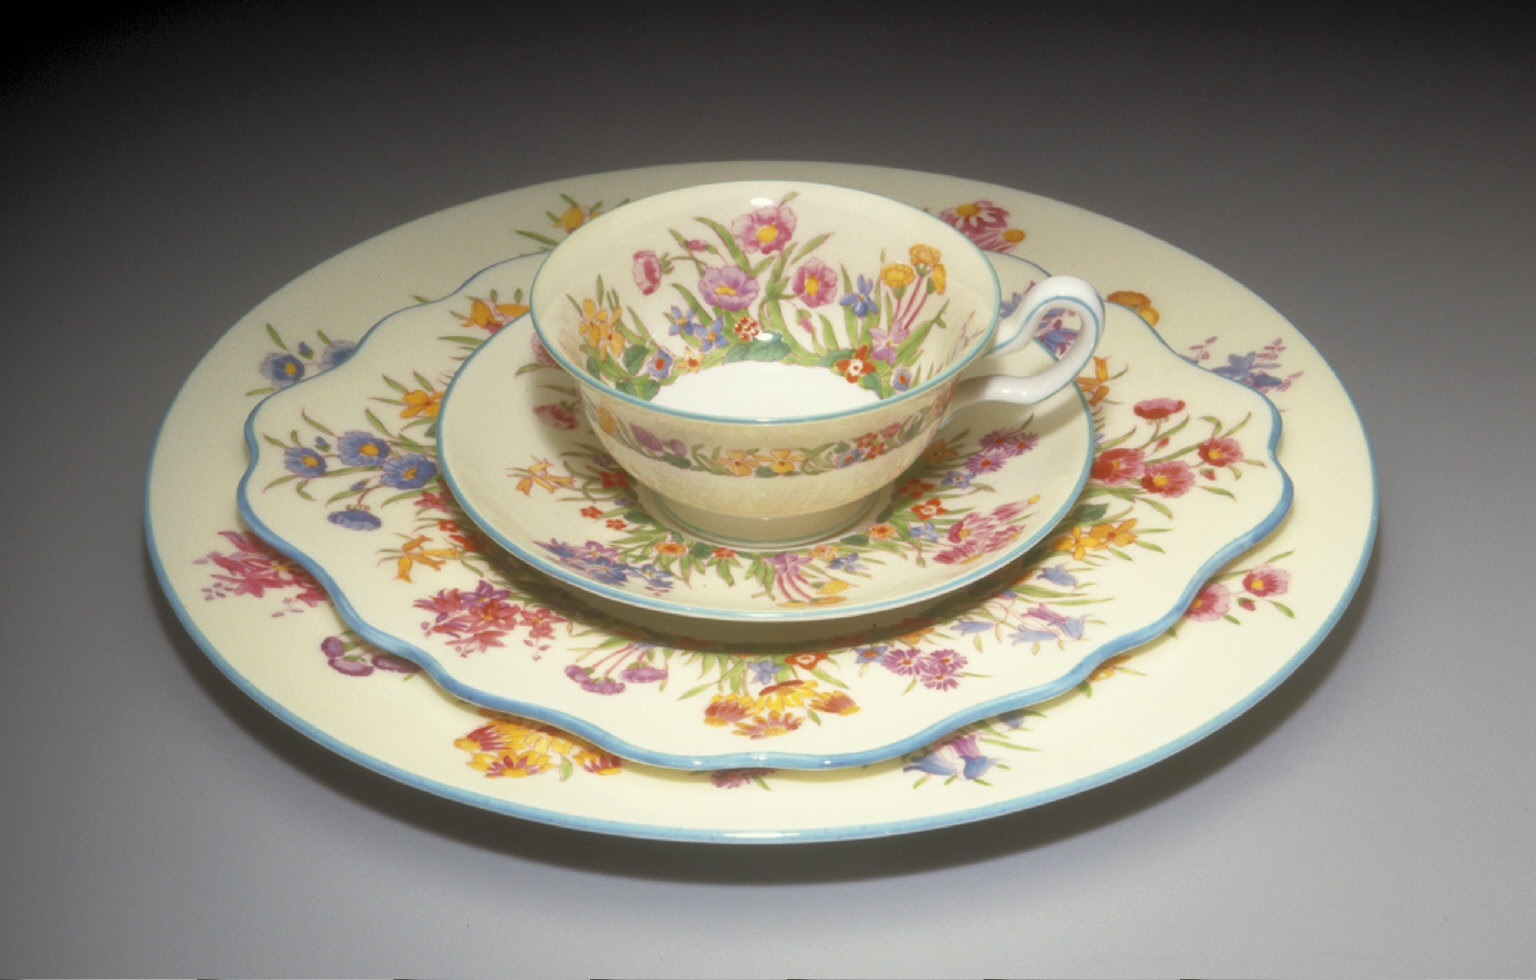 'Peony' shape teacup and saucer with 'Prairie Flowers' pattern